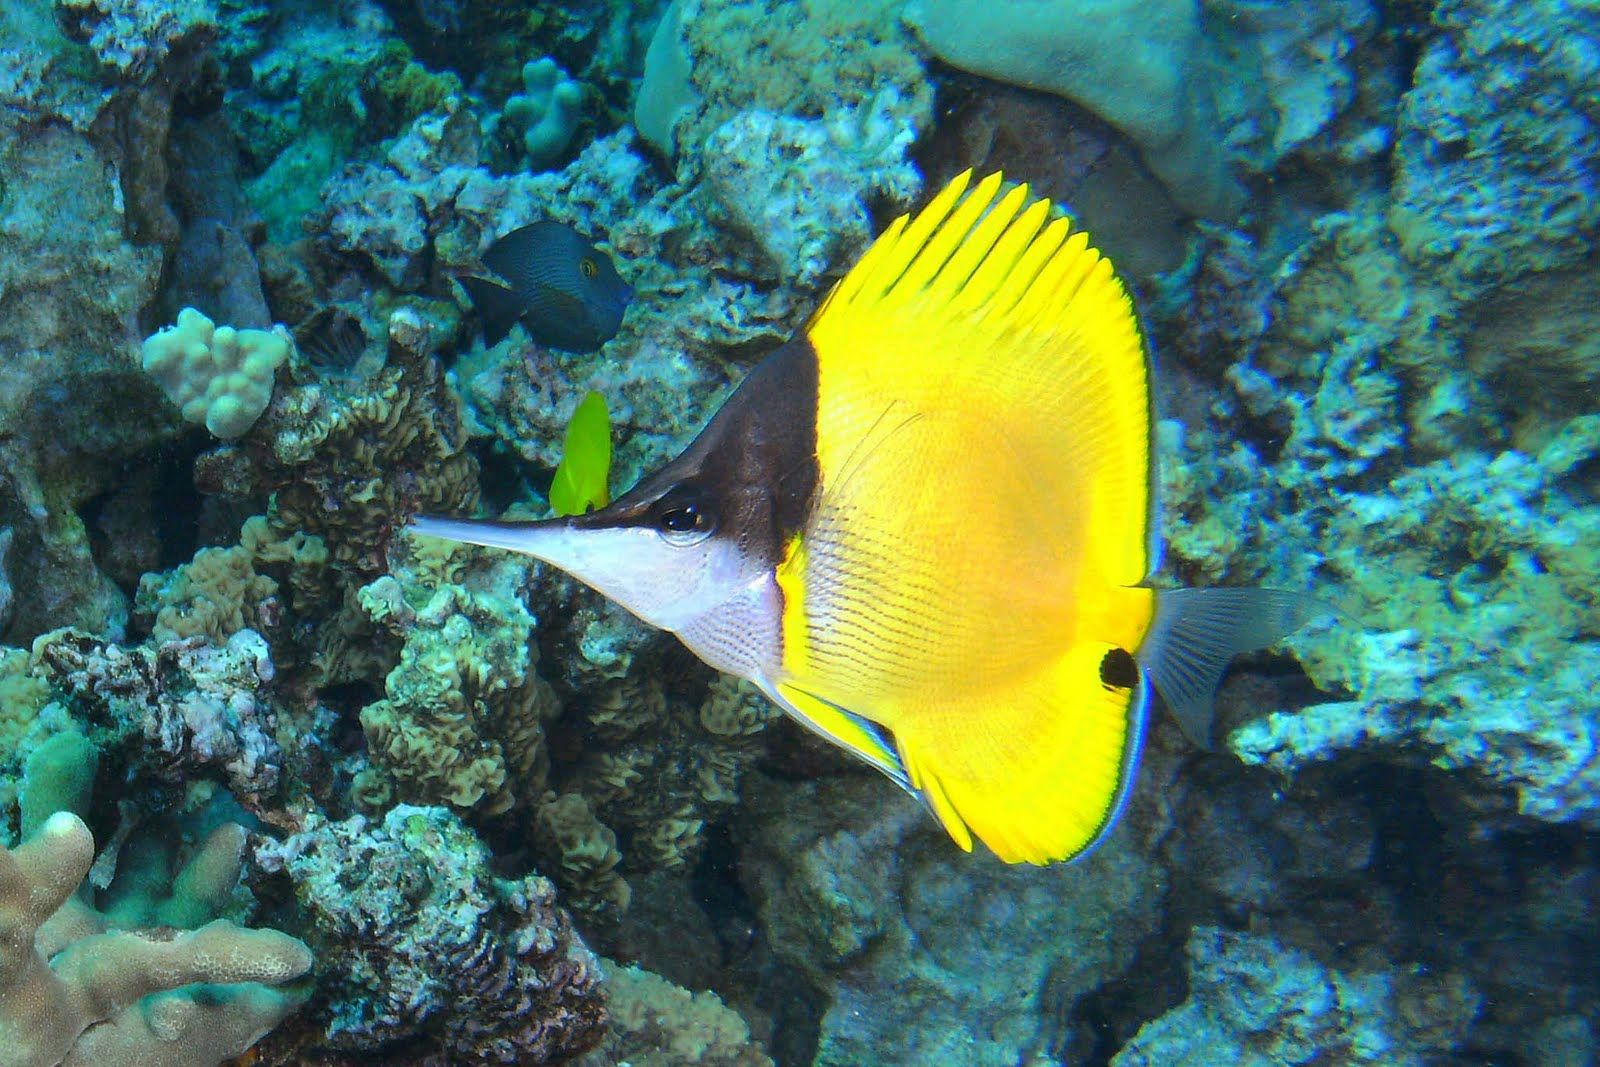 Yellow longnose butterflyfish - Range: Indo-Pacific: Red Sea and East Africa to the Hawaiian and Easter islands. Eastern Pacific: southern Baja California, Mexico and from the Revillagigedo and Galapagos Islands